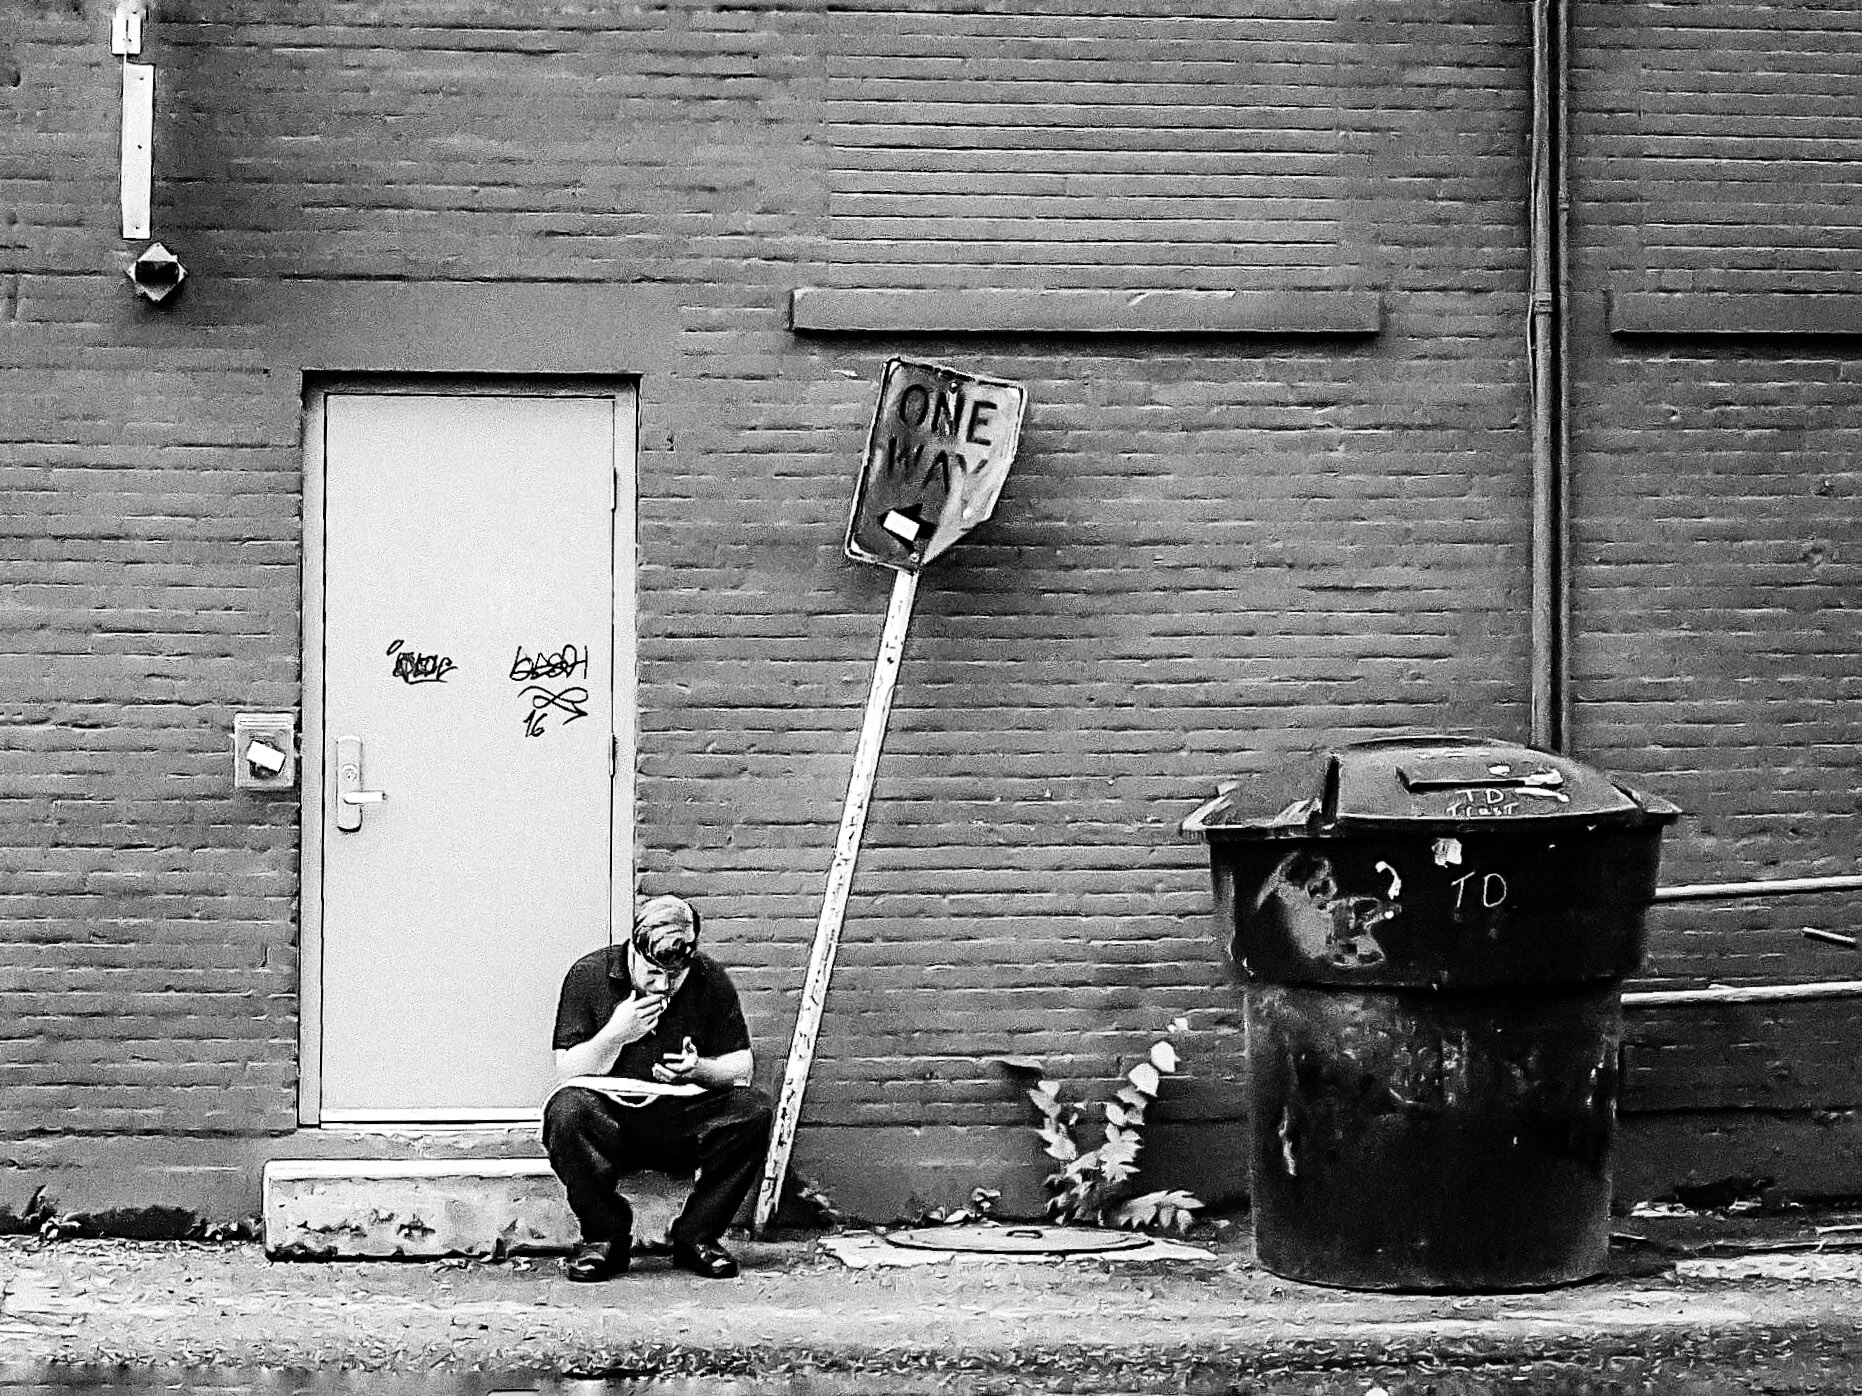 Art and Documentary Photography - Loading Smoke_Break_(Behind_2nd_Ave)__2016SpencerMcCall.jpg